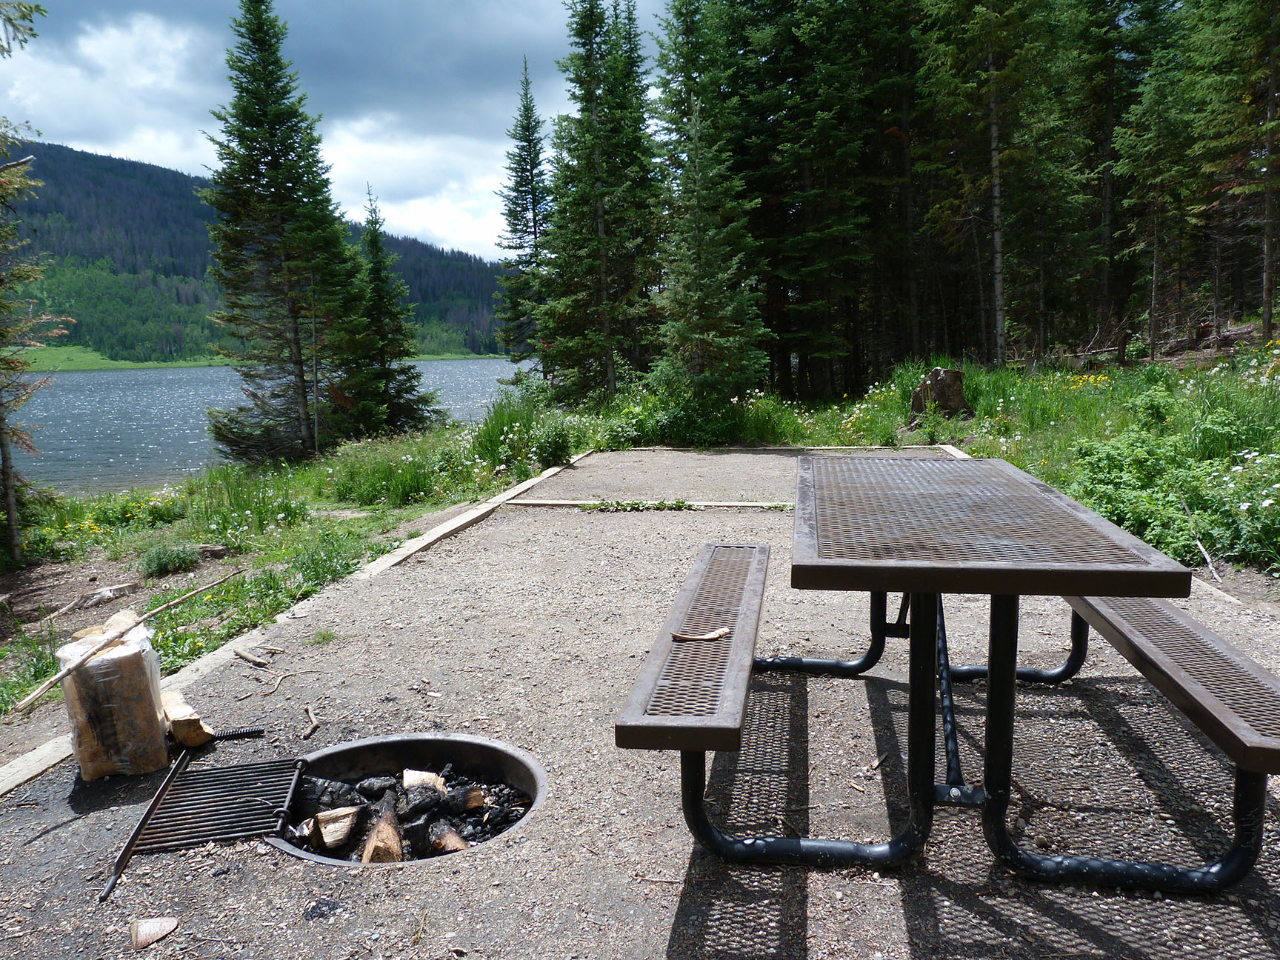 Camping Review of Pearl Lake State Park Campground